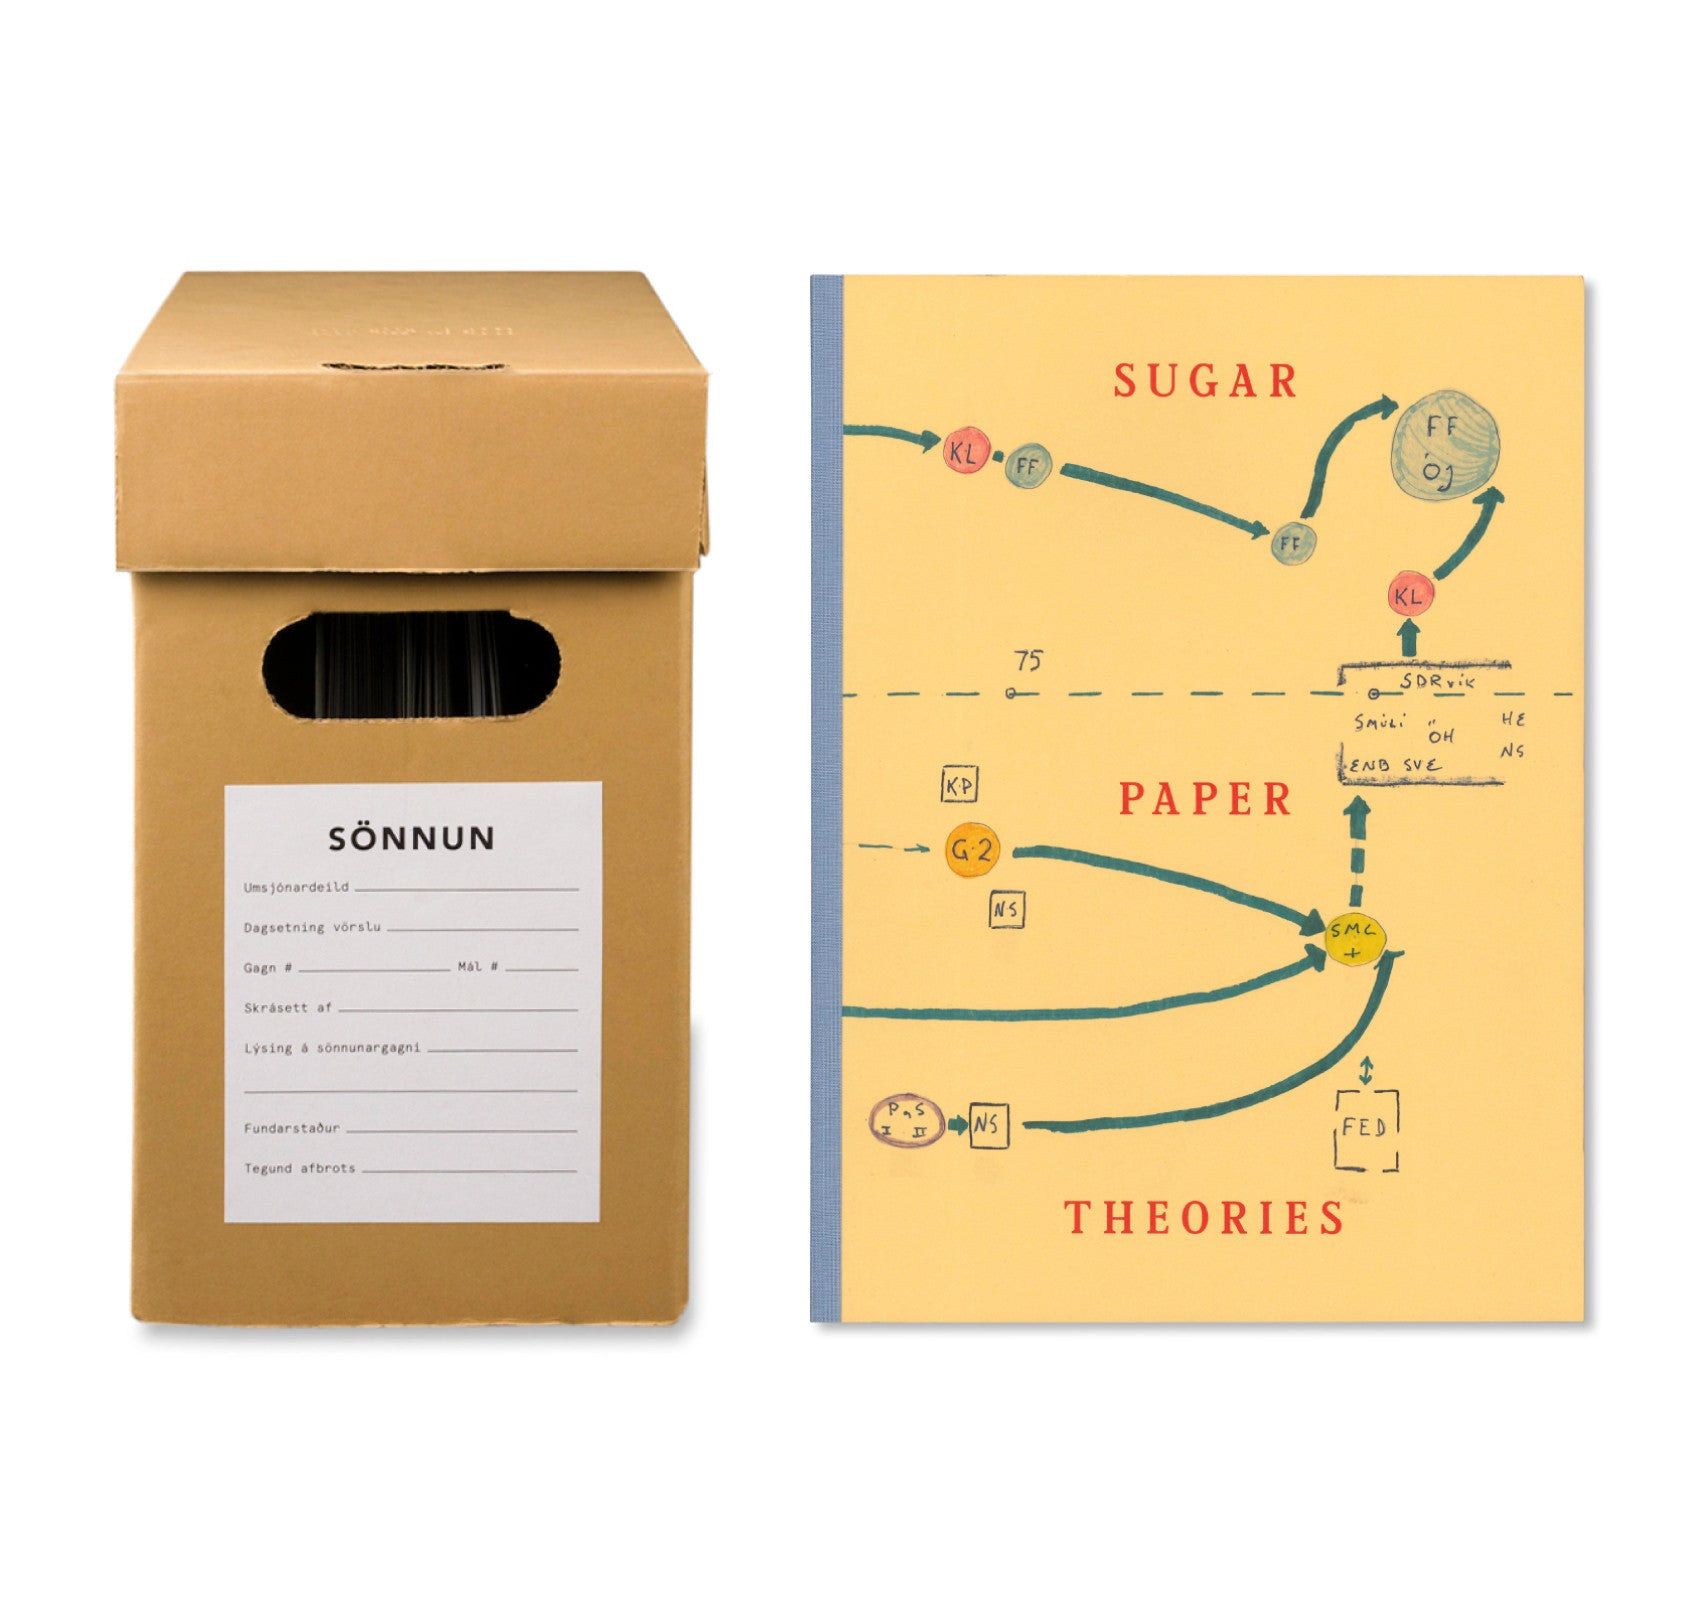 SUGAR PAPER THEORIES by Jack Latham [SPECIAL EDITION / SIGNED]